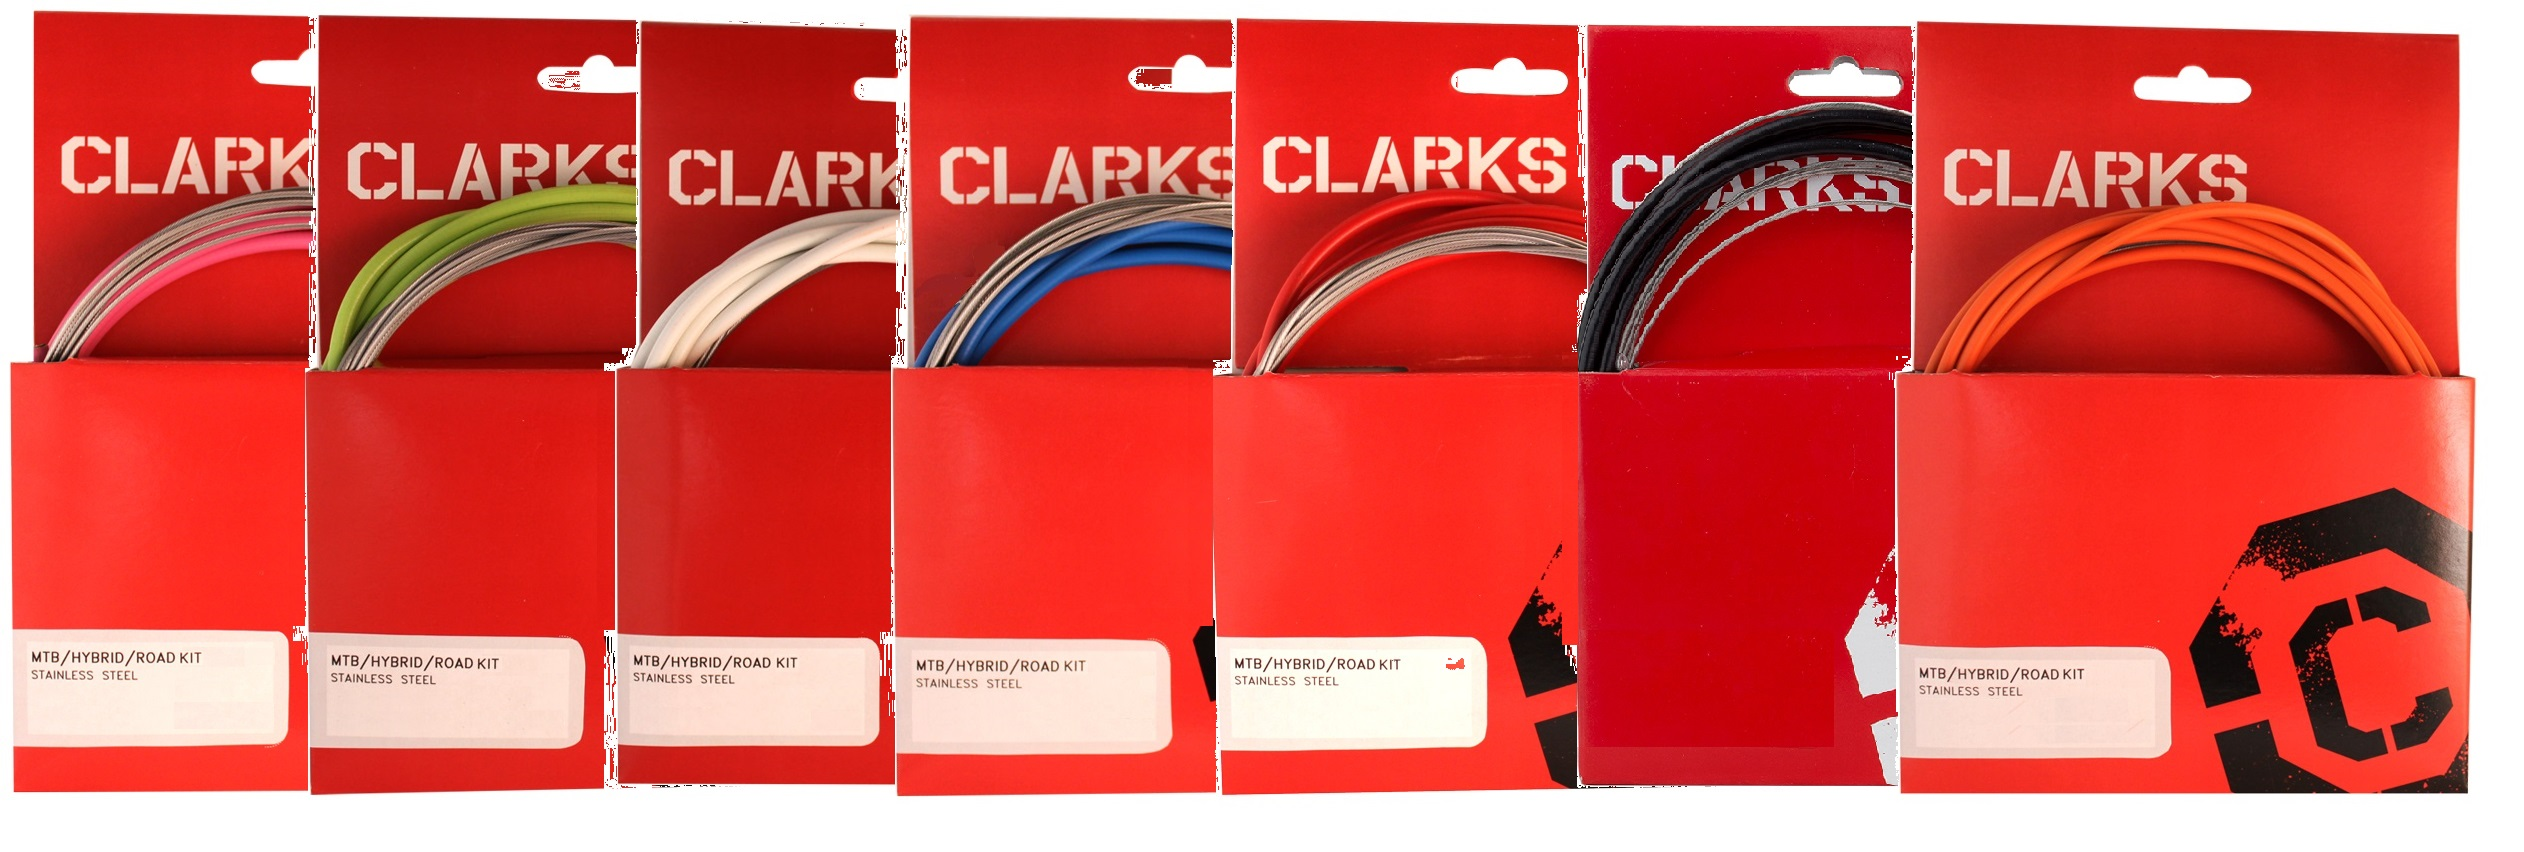 Clarks Cable set